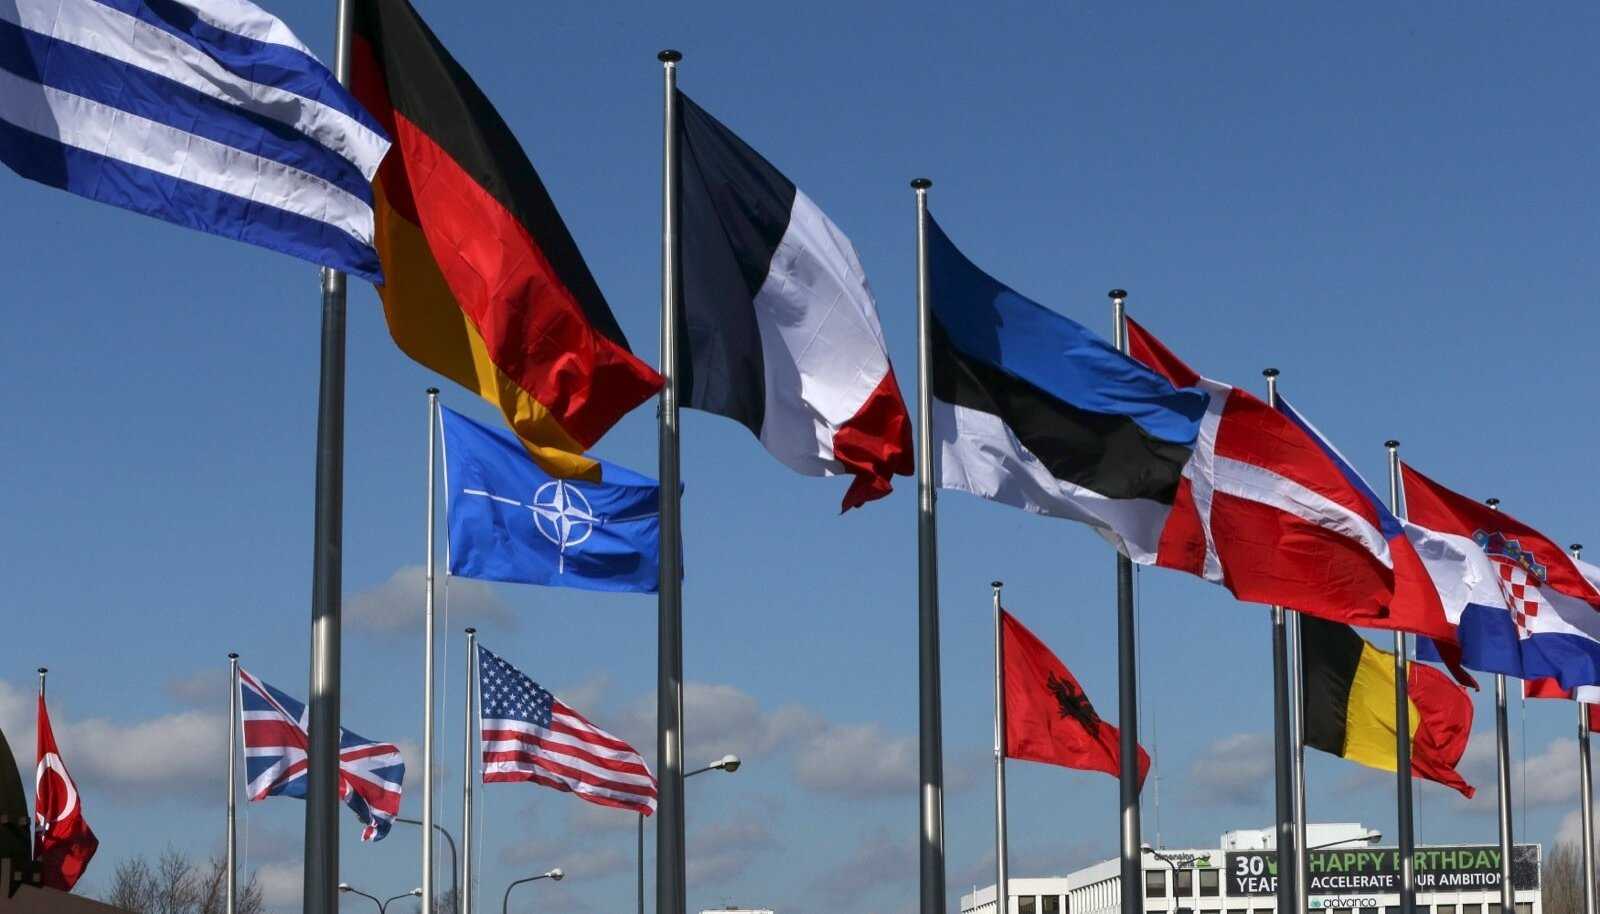 Flags fly at the Alliance headquarters in Brussels during a NATO ambassadors meeting on the situation in Ukraine and Crimea region